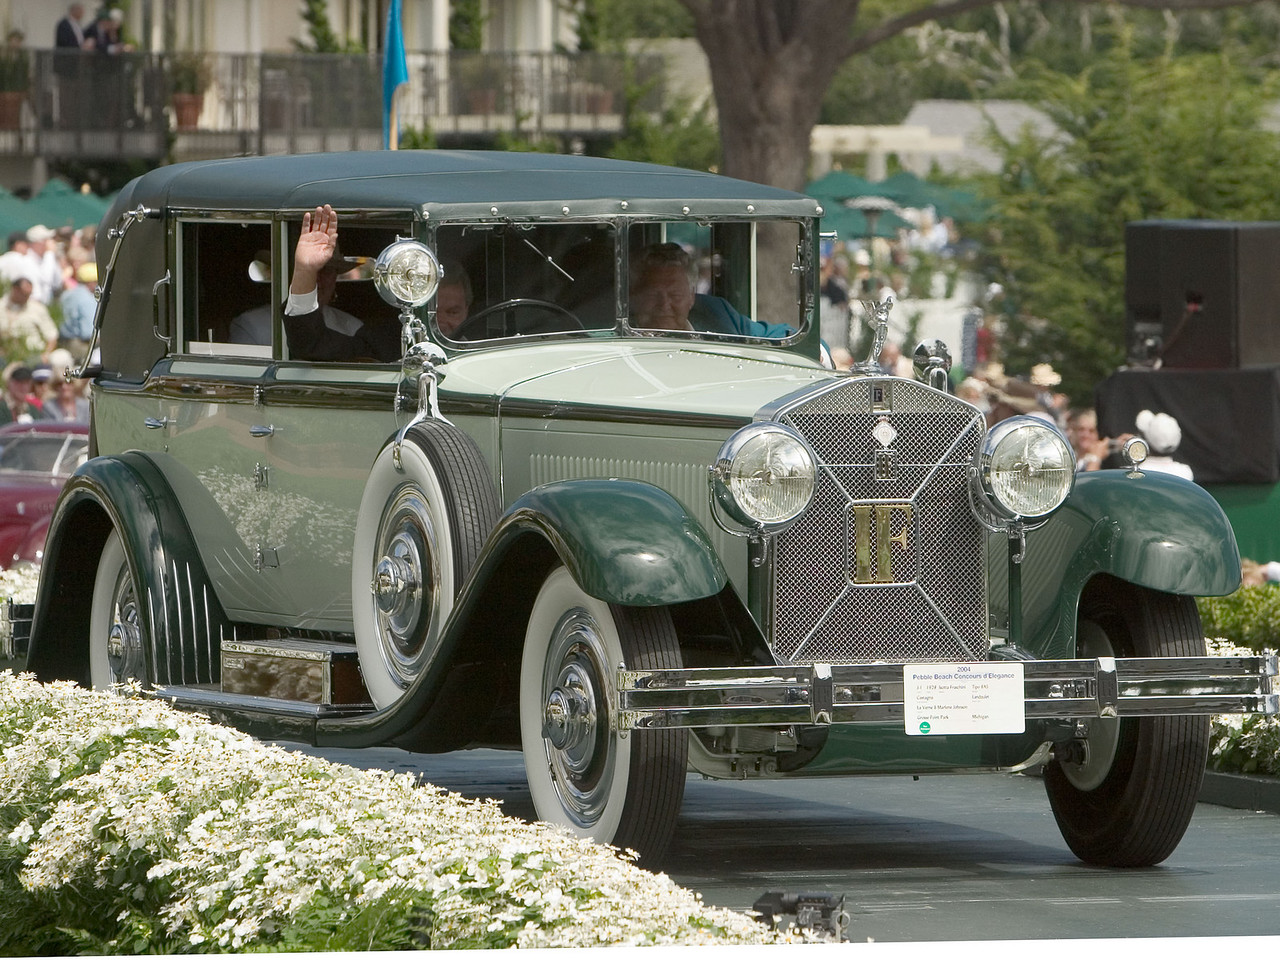 1928 Isotta Fraschini Tipo 8AS Castagna Landaulet.